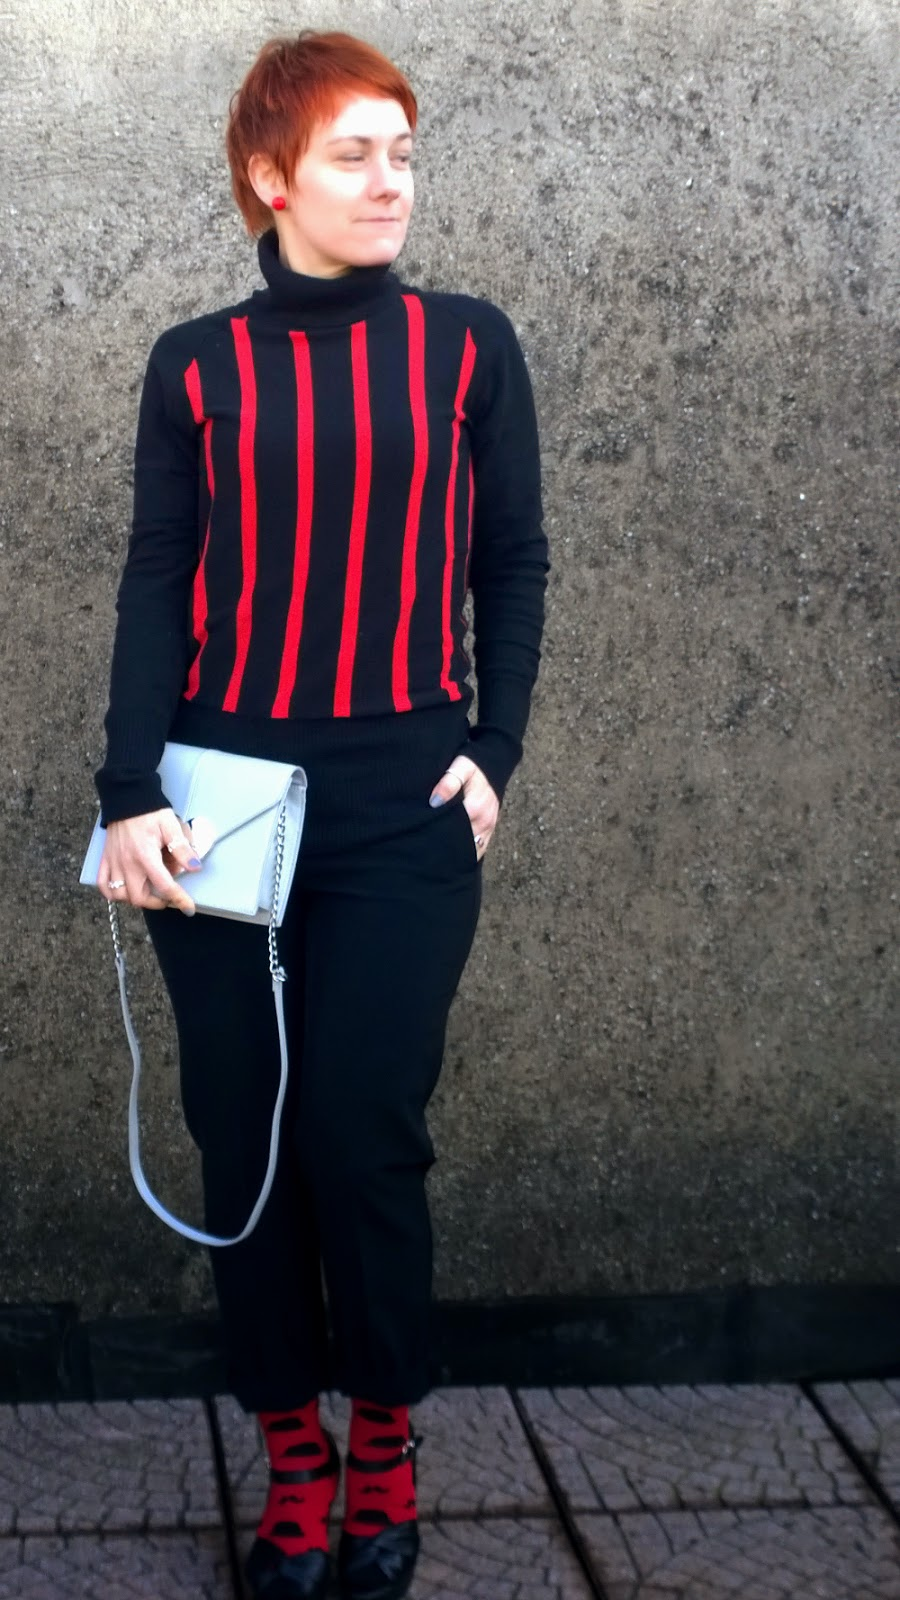 Wearing a black turtleneck with red stripes, black pants, red socks with mustaches, platform sandals and a grey heart closure bag